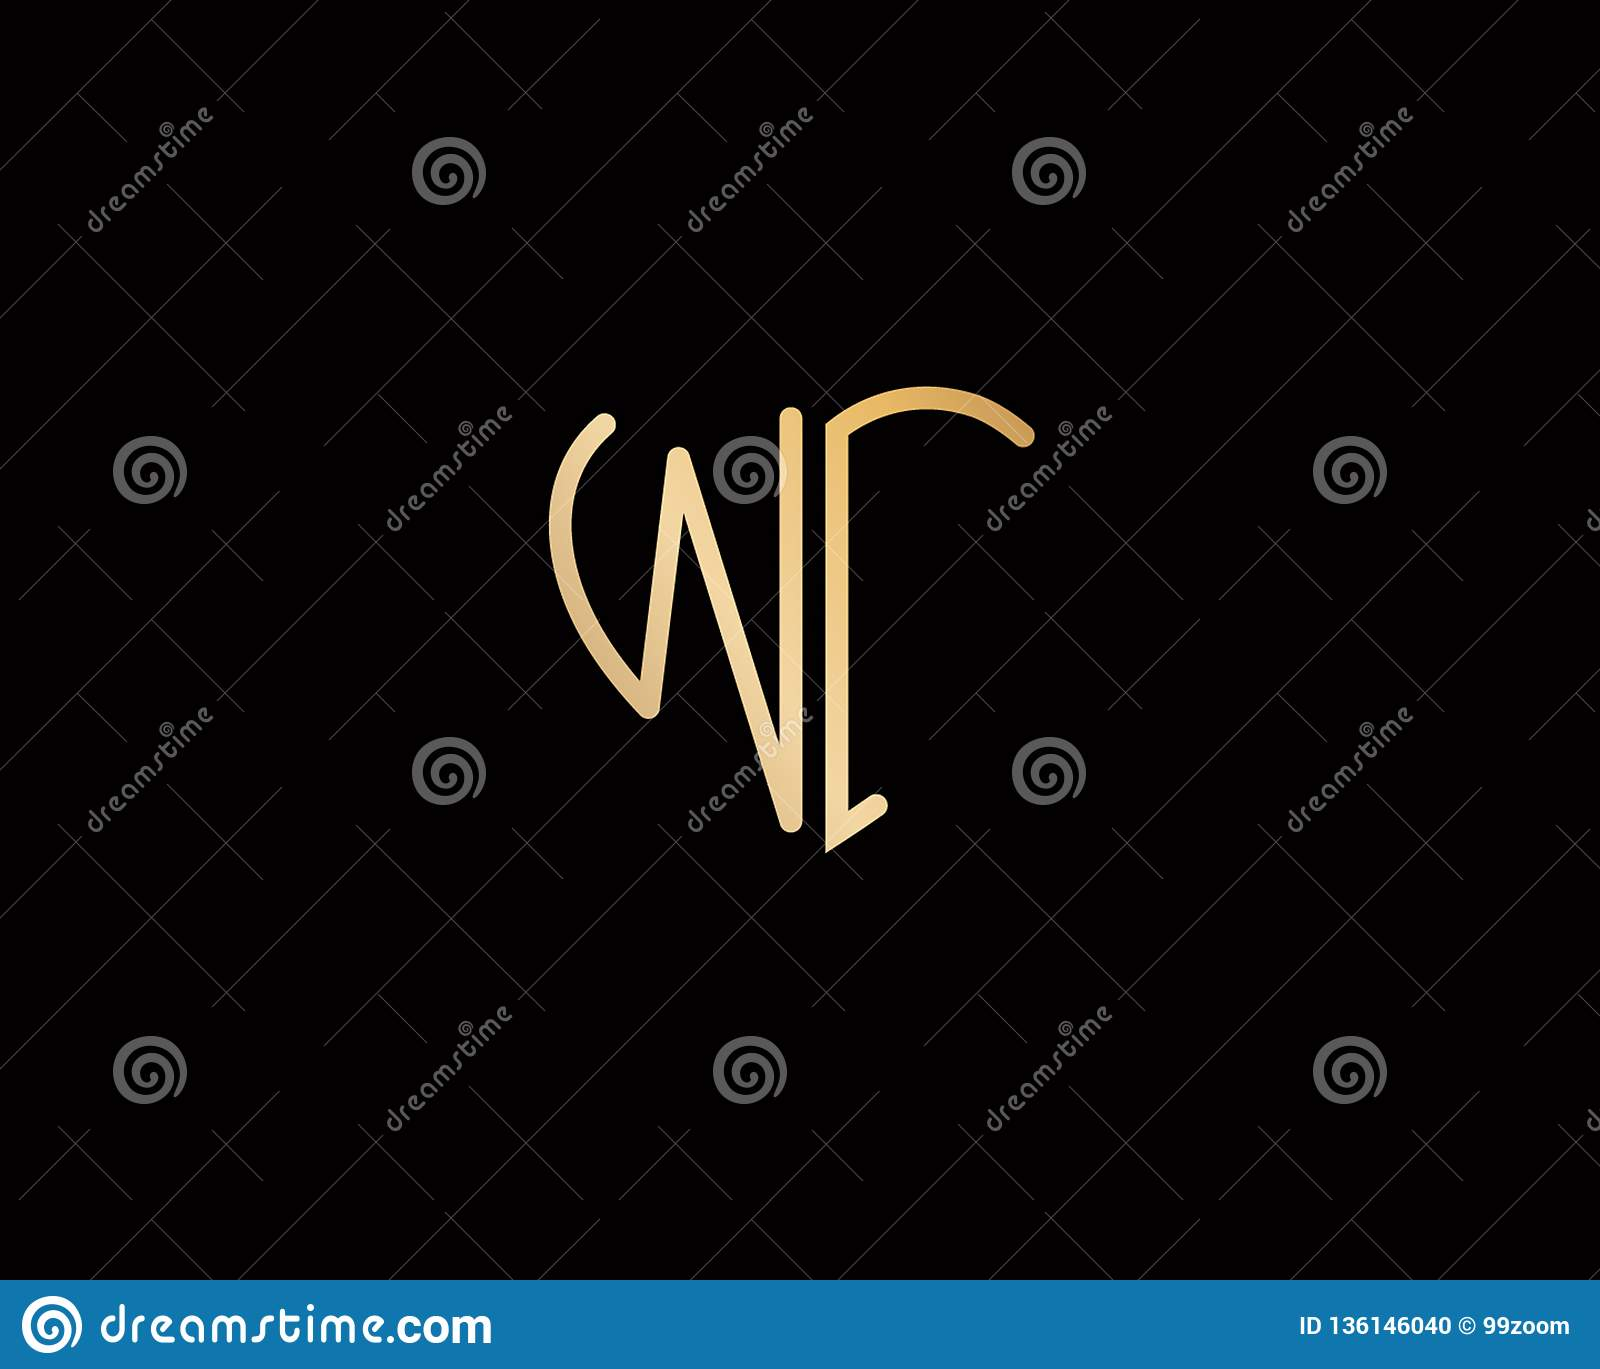 Wi heart shape logo letter with circle shape gold color vector design logo  design for business f61935523e04